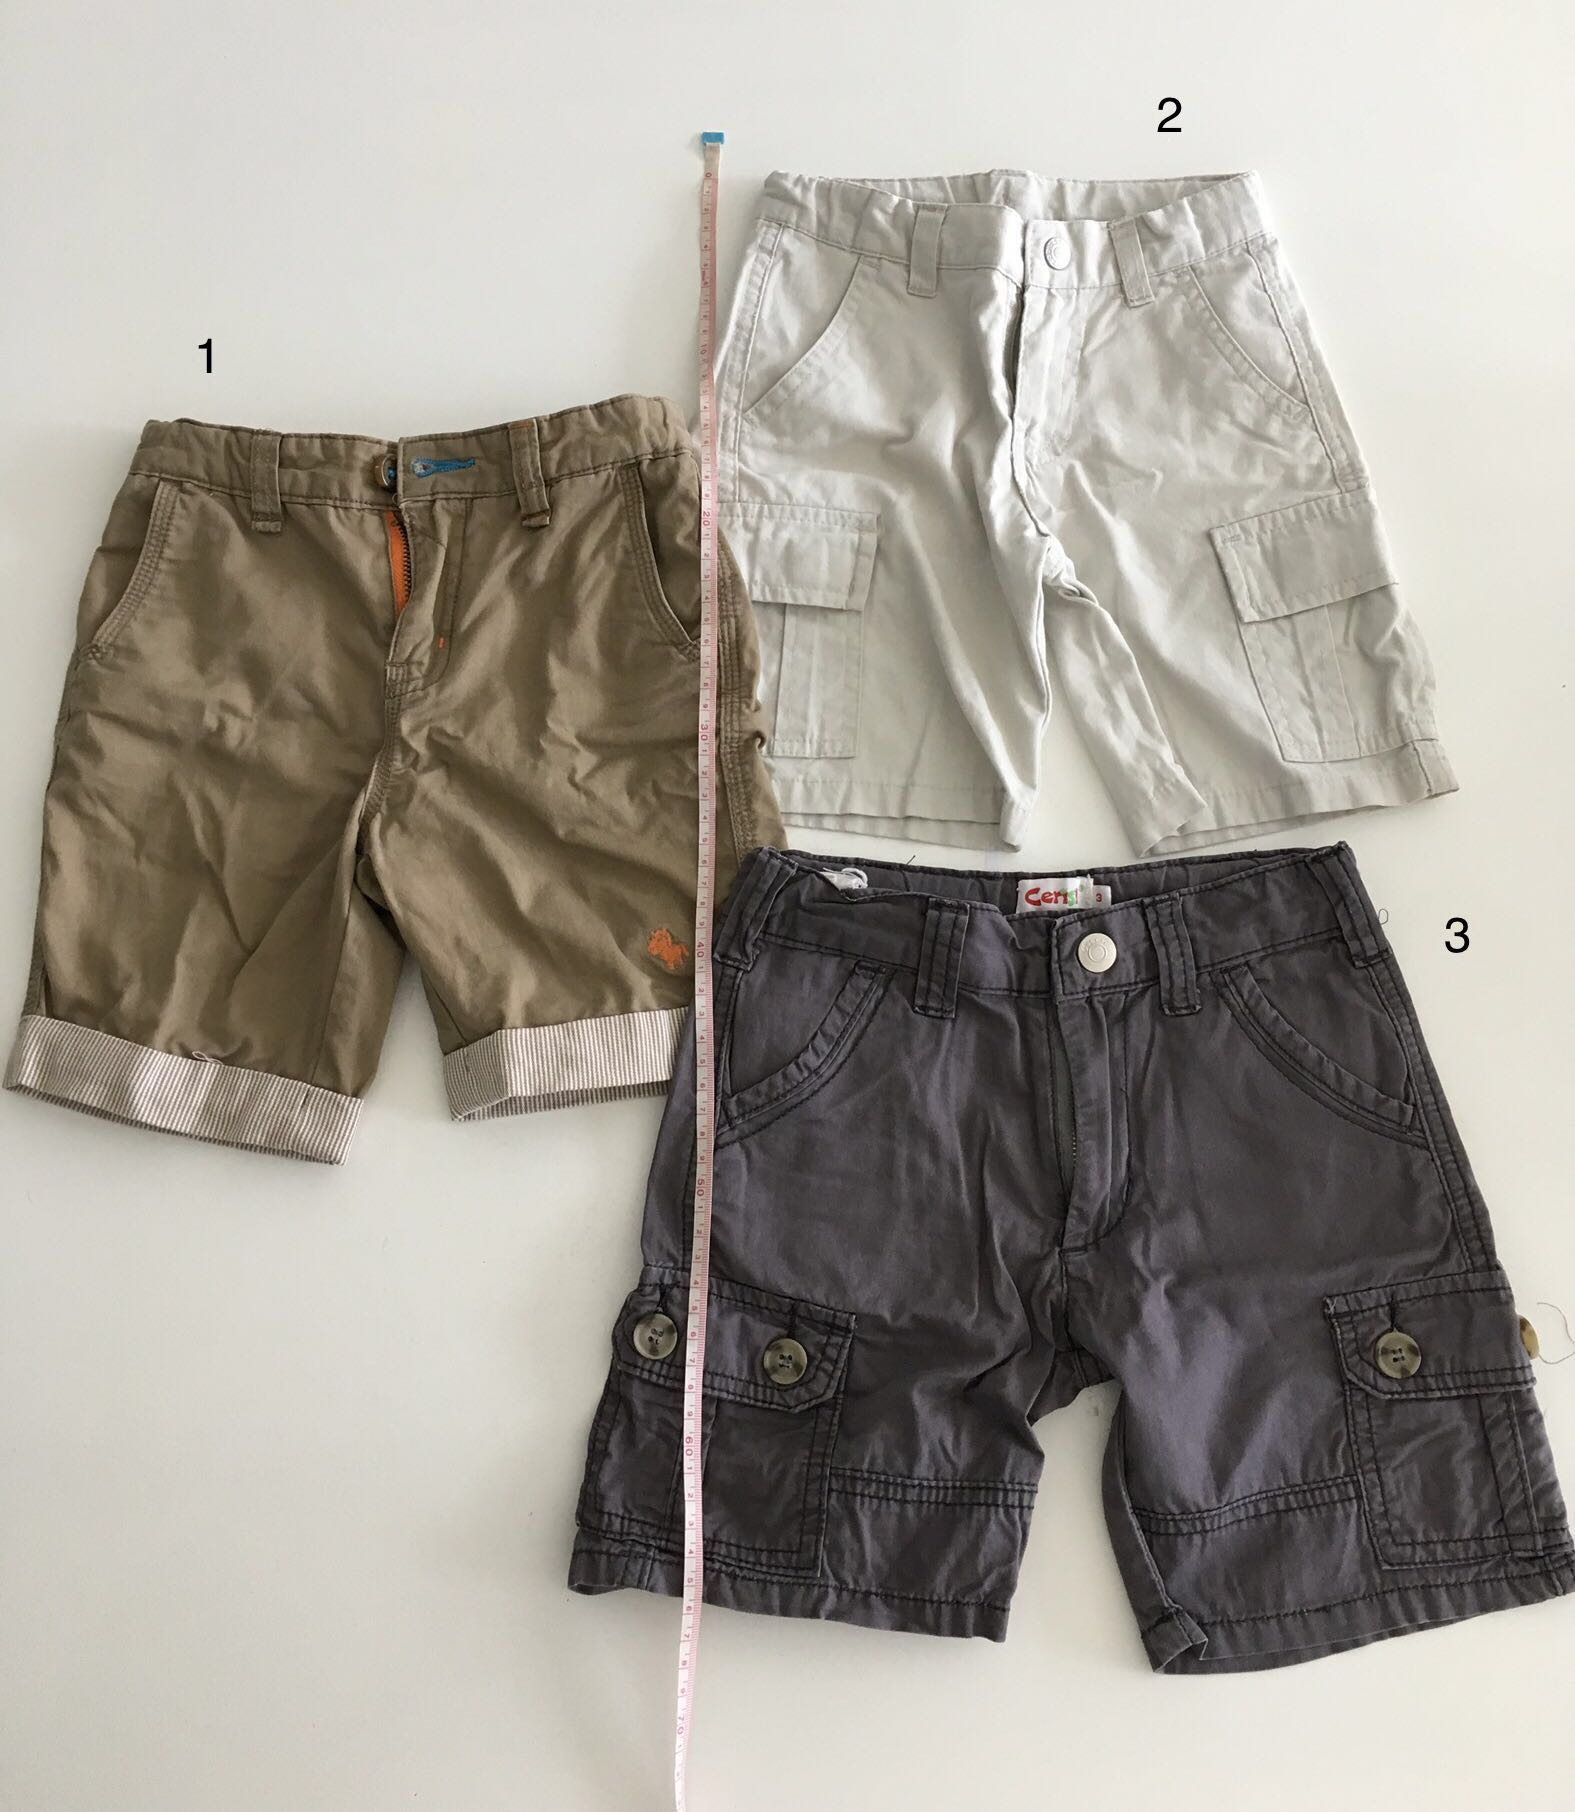 9037a1c8228c Bundle] PL Toddler Boy Shorts (3 pairs; size 3T), Babies & Kids ...